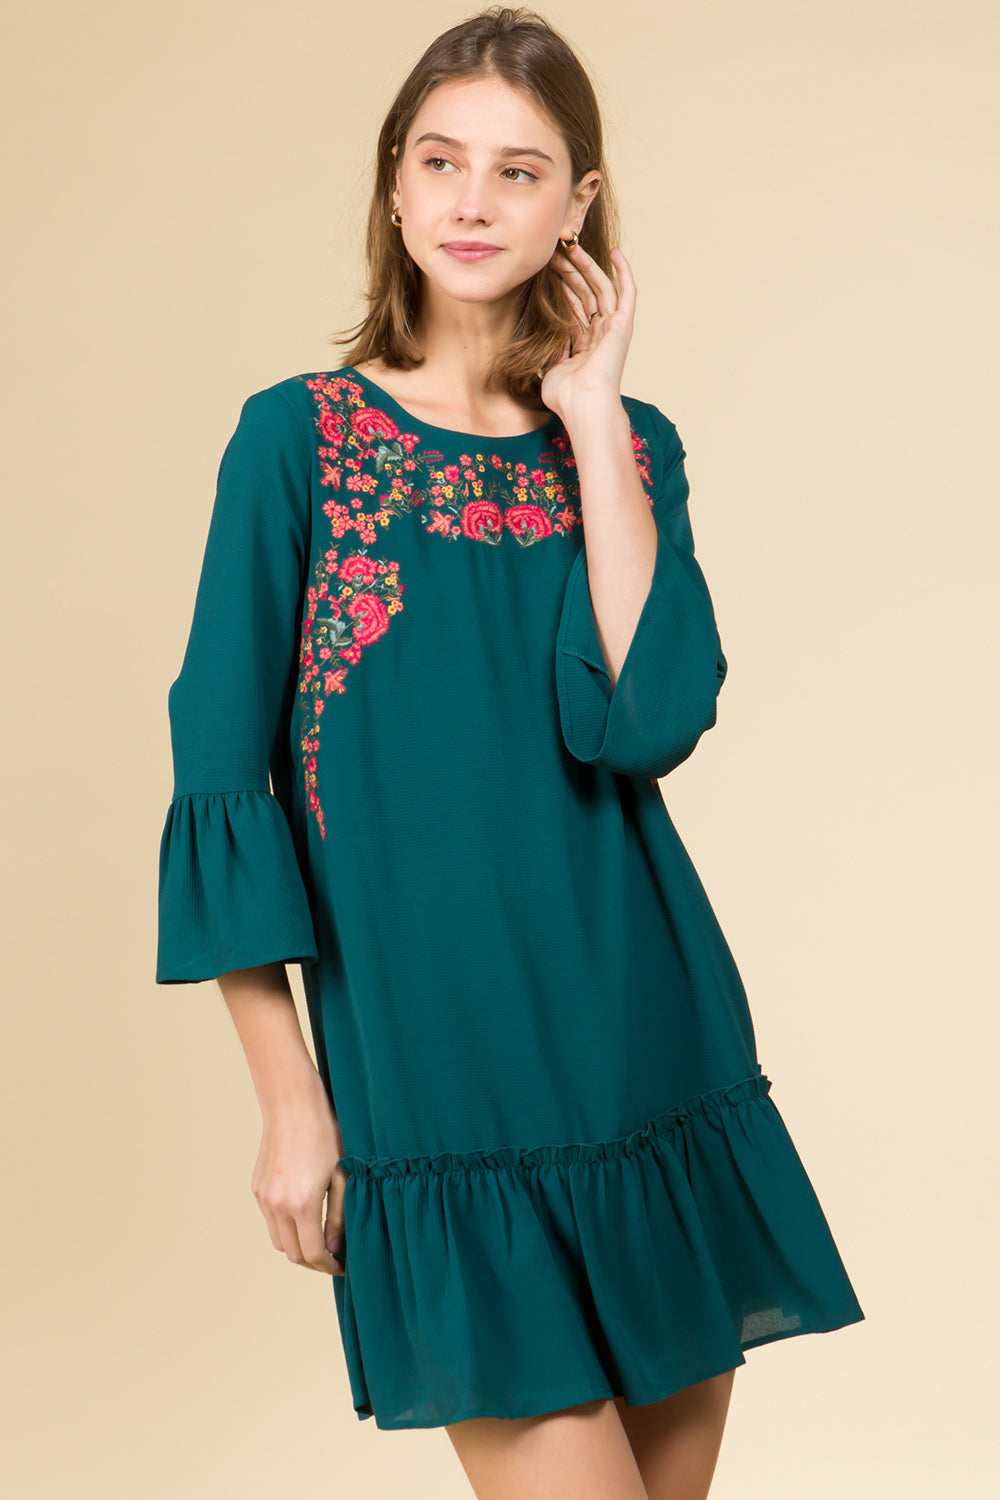 EMBROIDERED FLORAL SEA GREEN RUFFLE DRESS